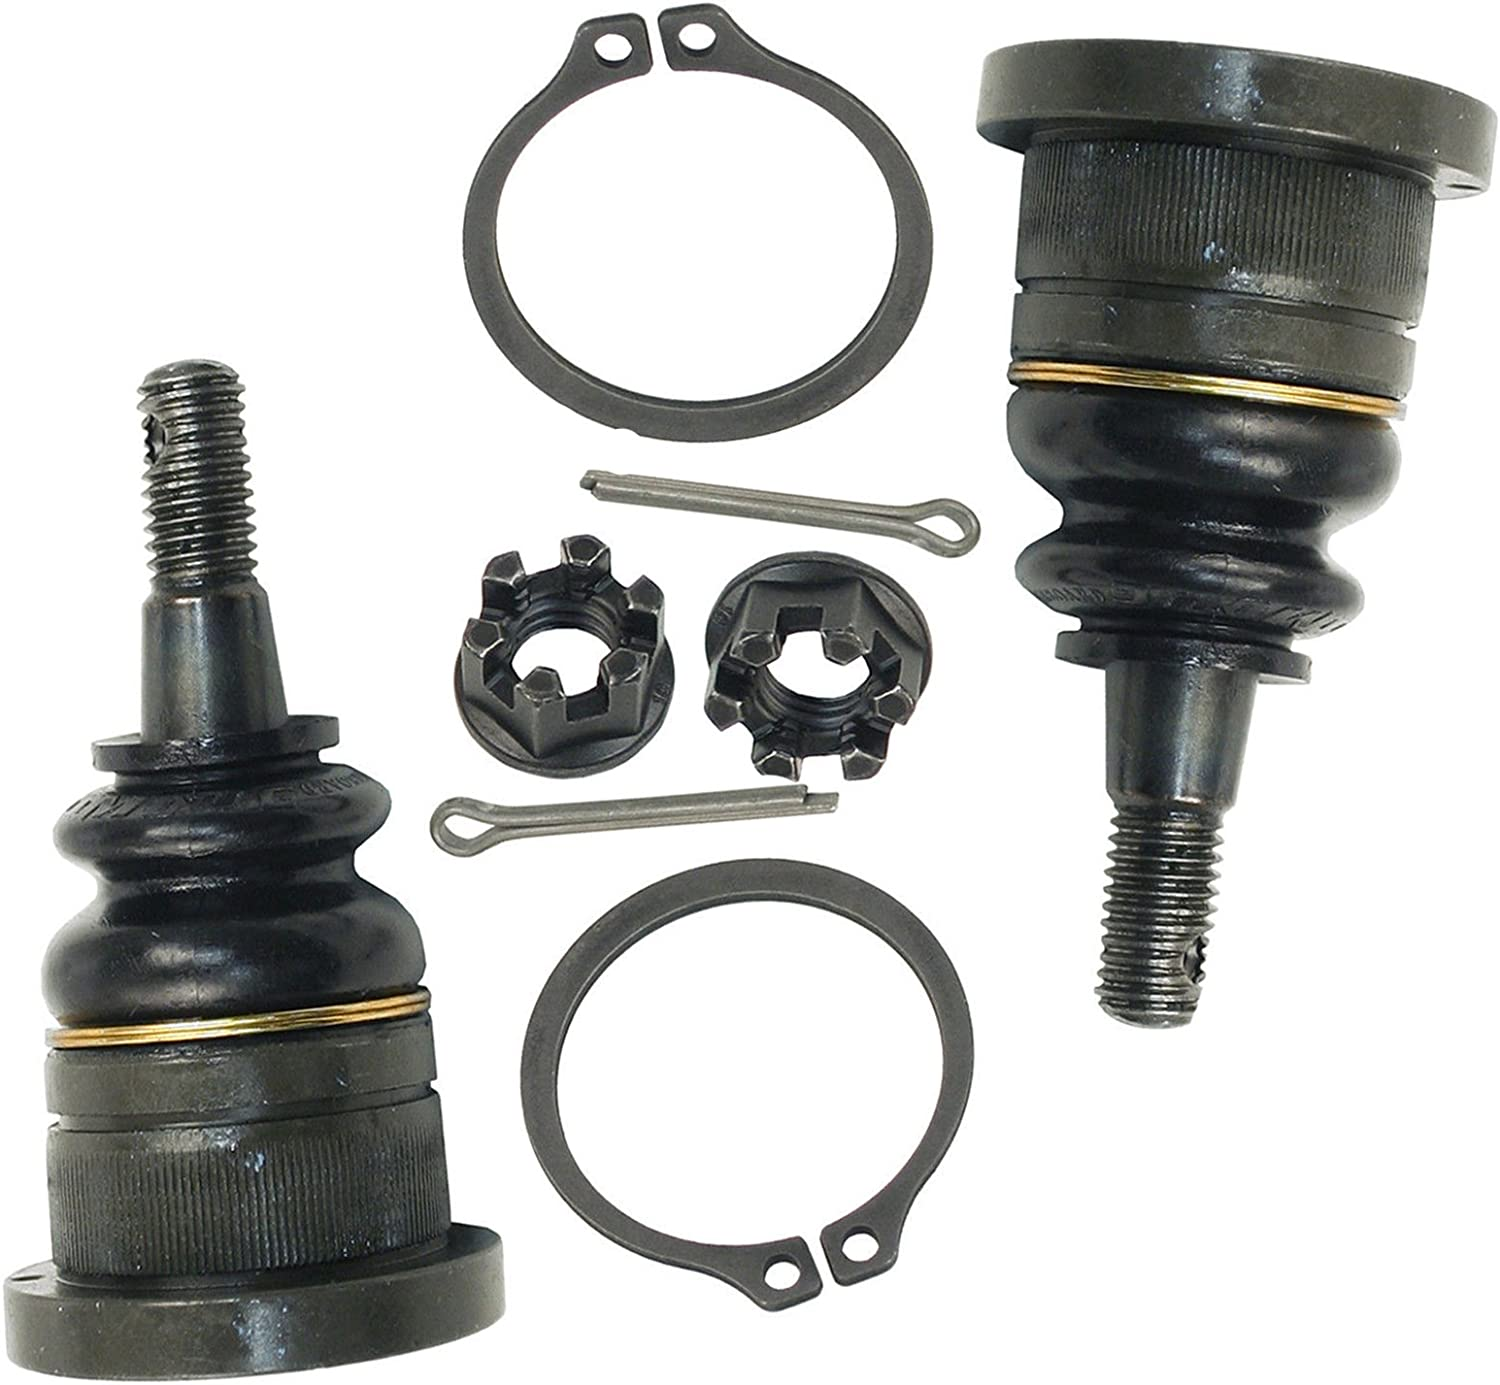 Detroit Axle 2 Both Brand New Driver /& Passenger Side Front Upper Ball Joint 10-Year Warranty